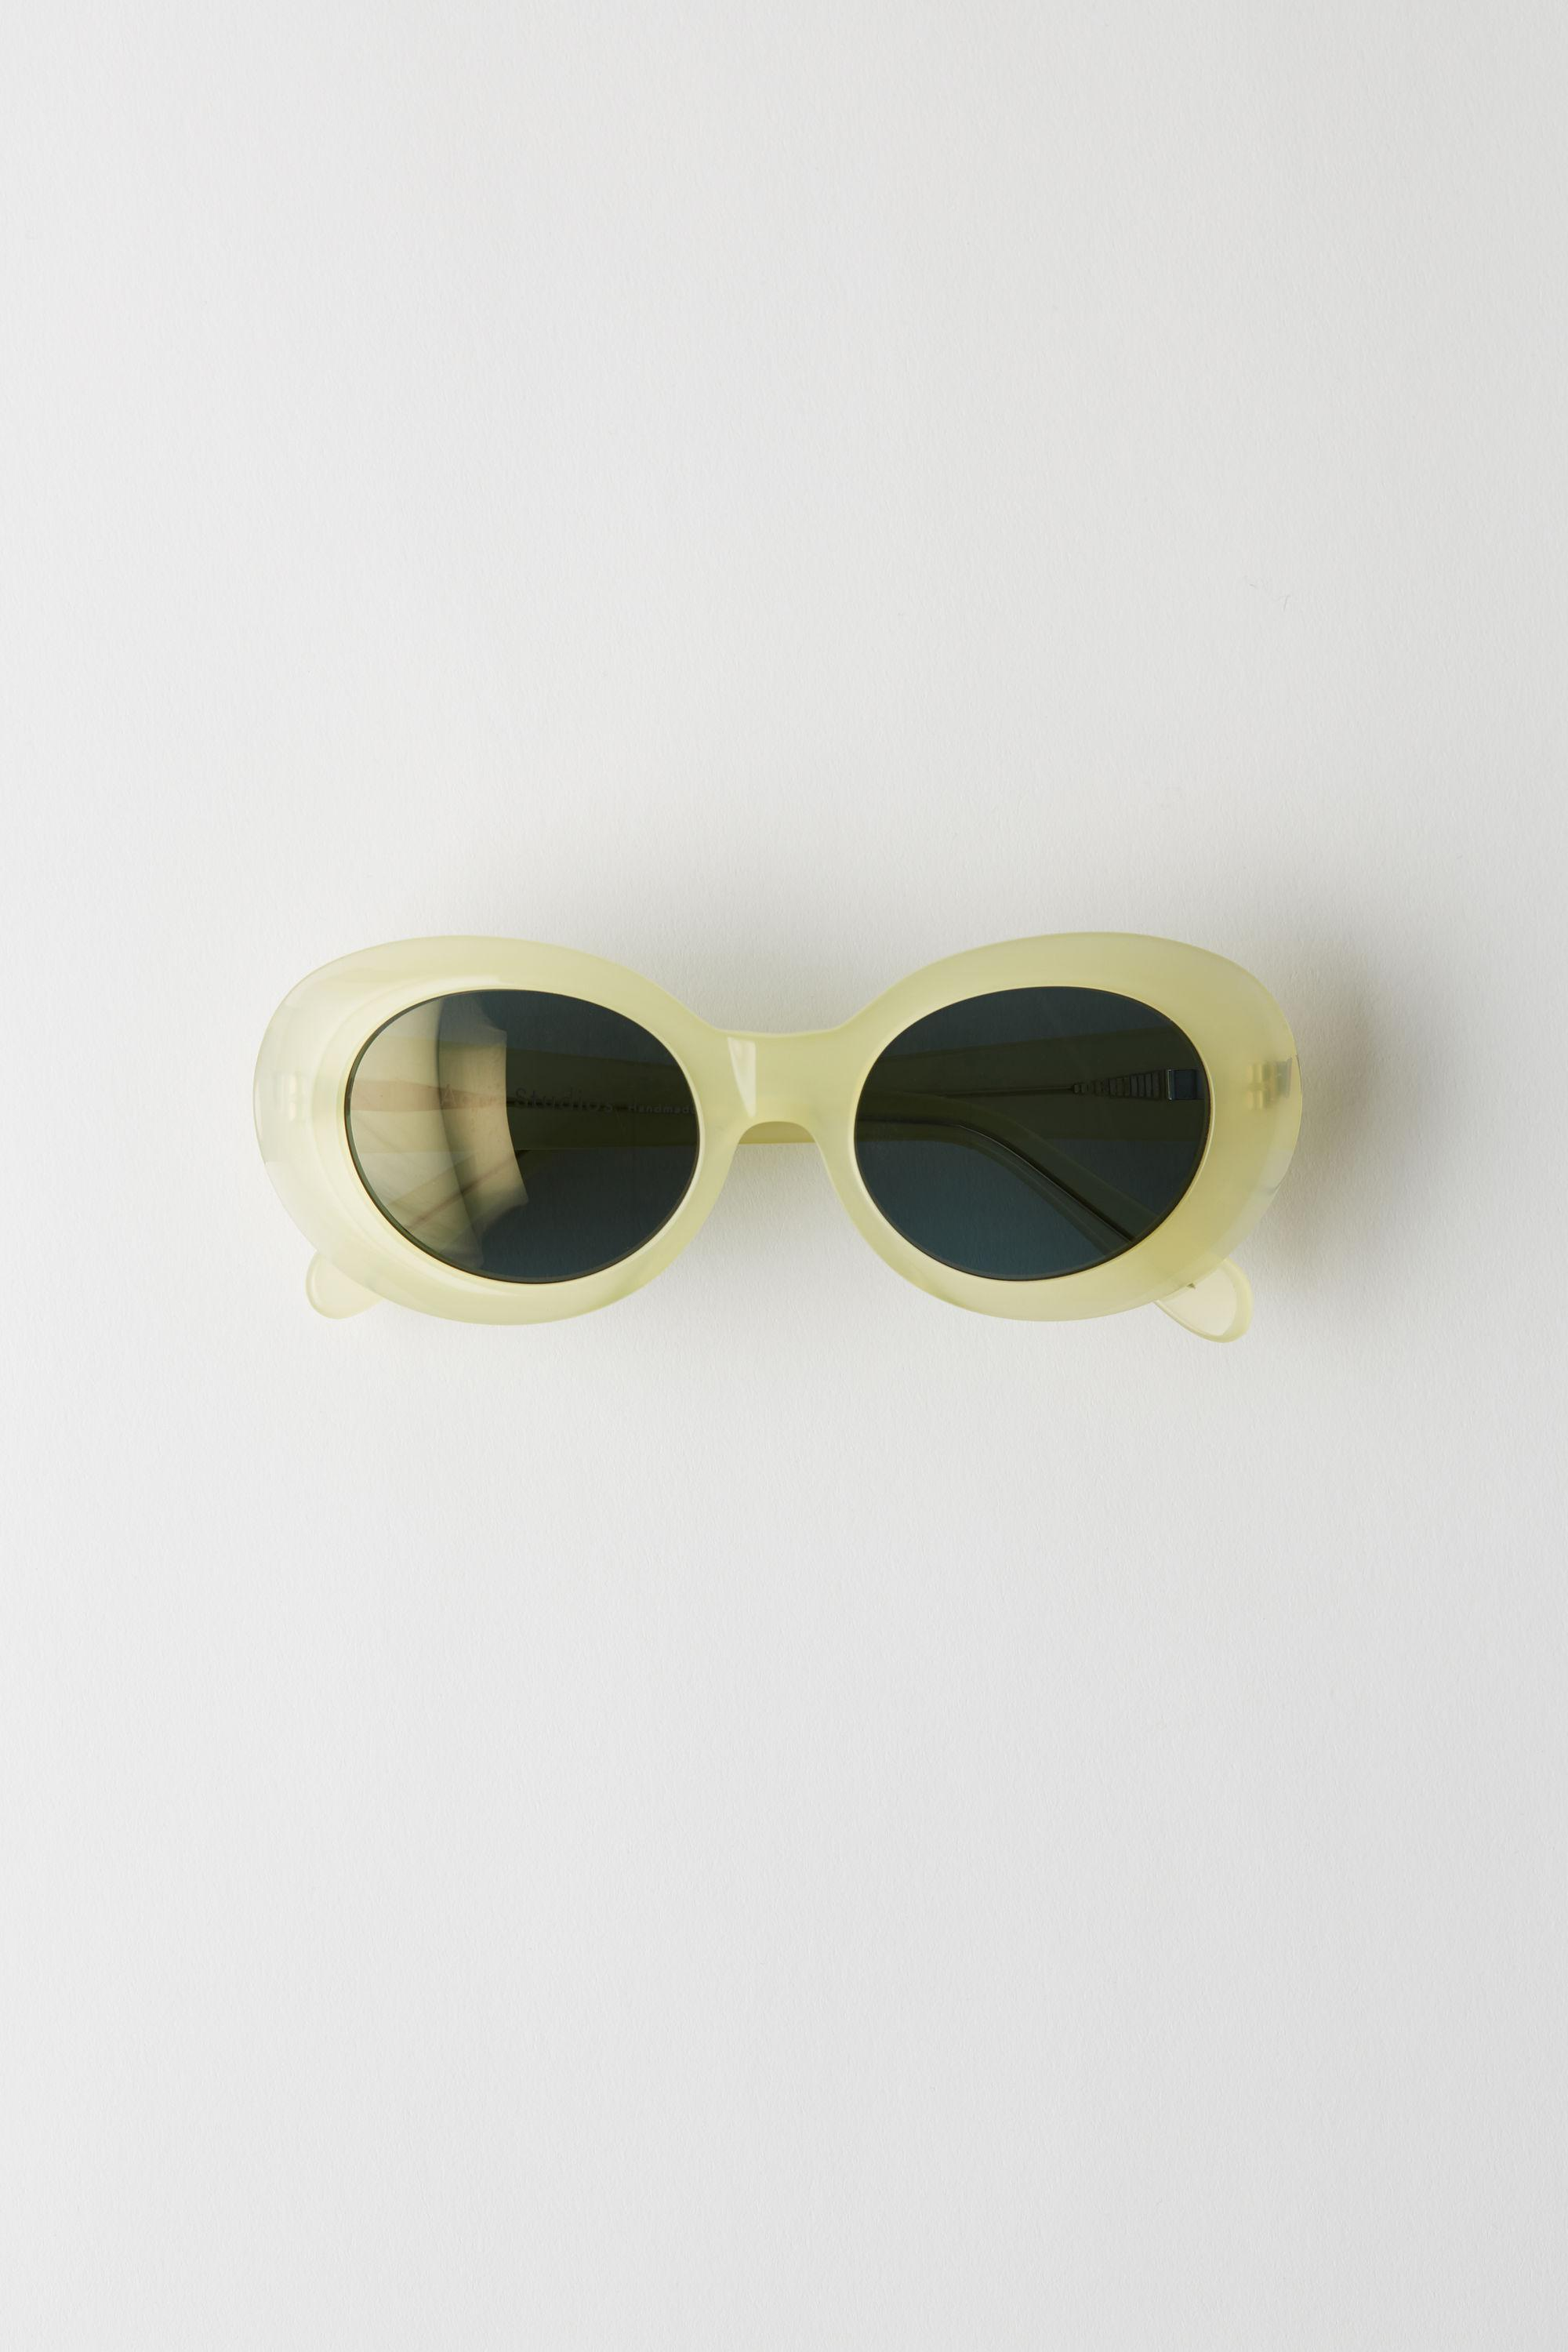 0ba6a8895a Lyst - Acne Studios Mustang Yellow blue Oval Sunglasses in Blue